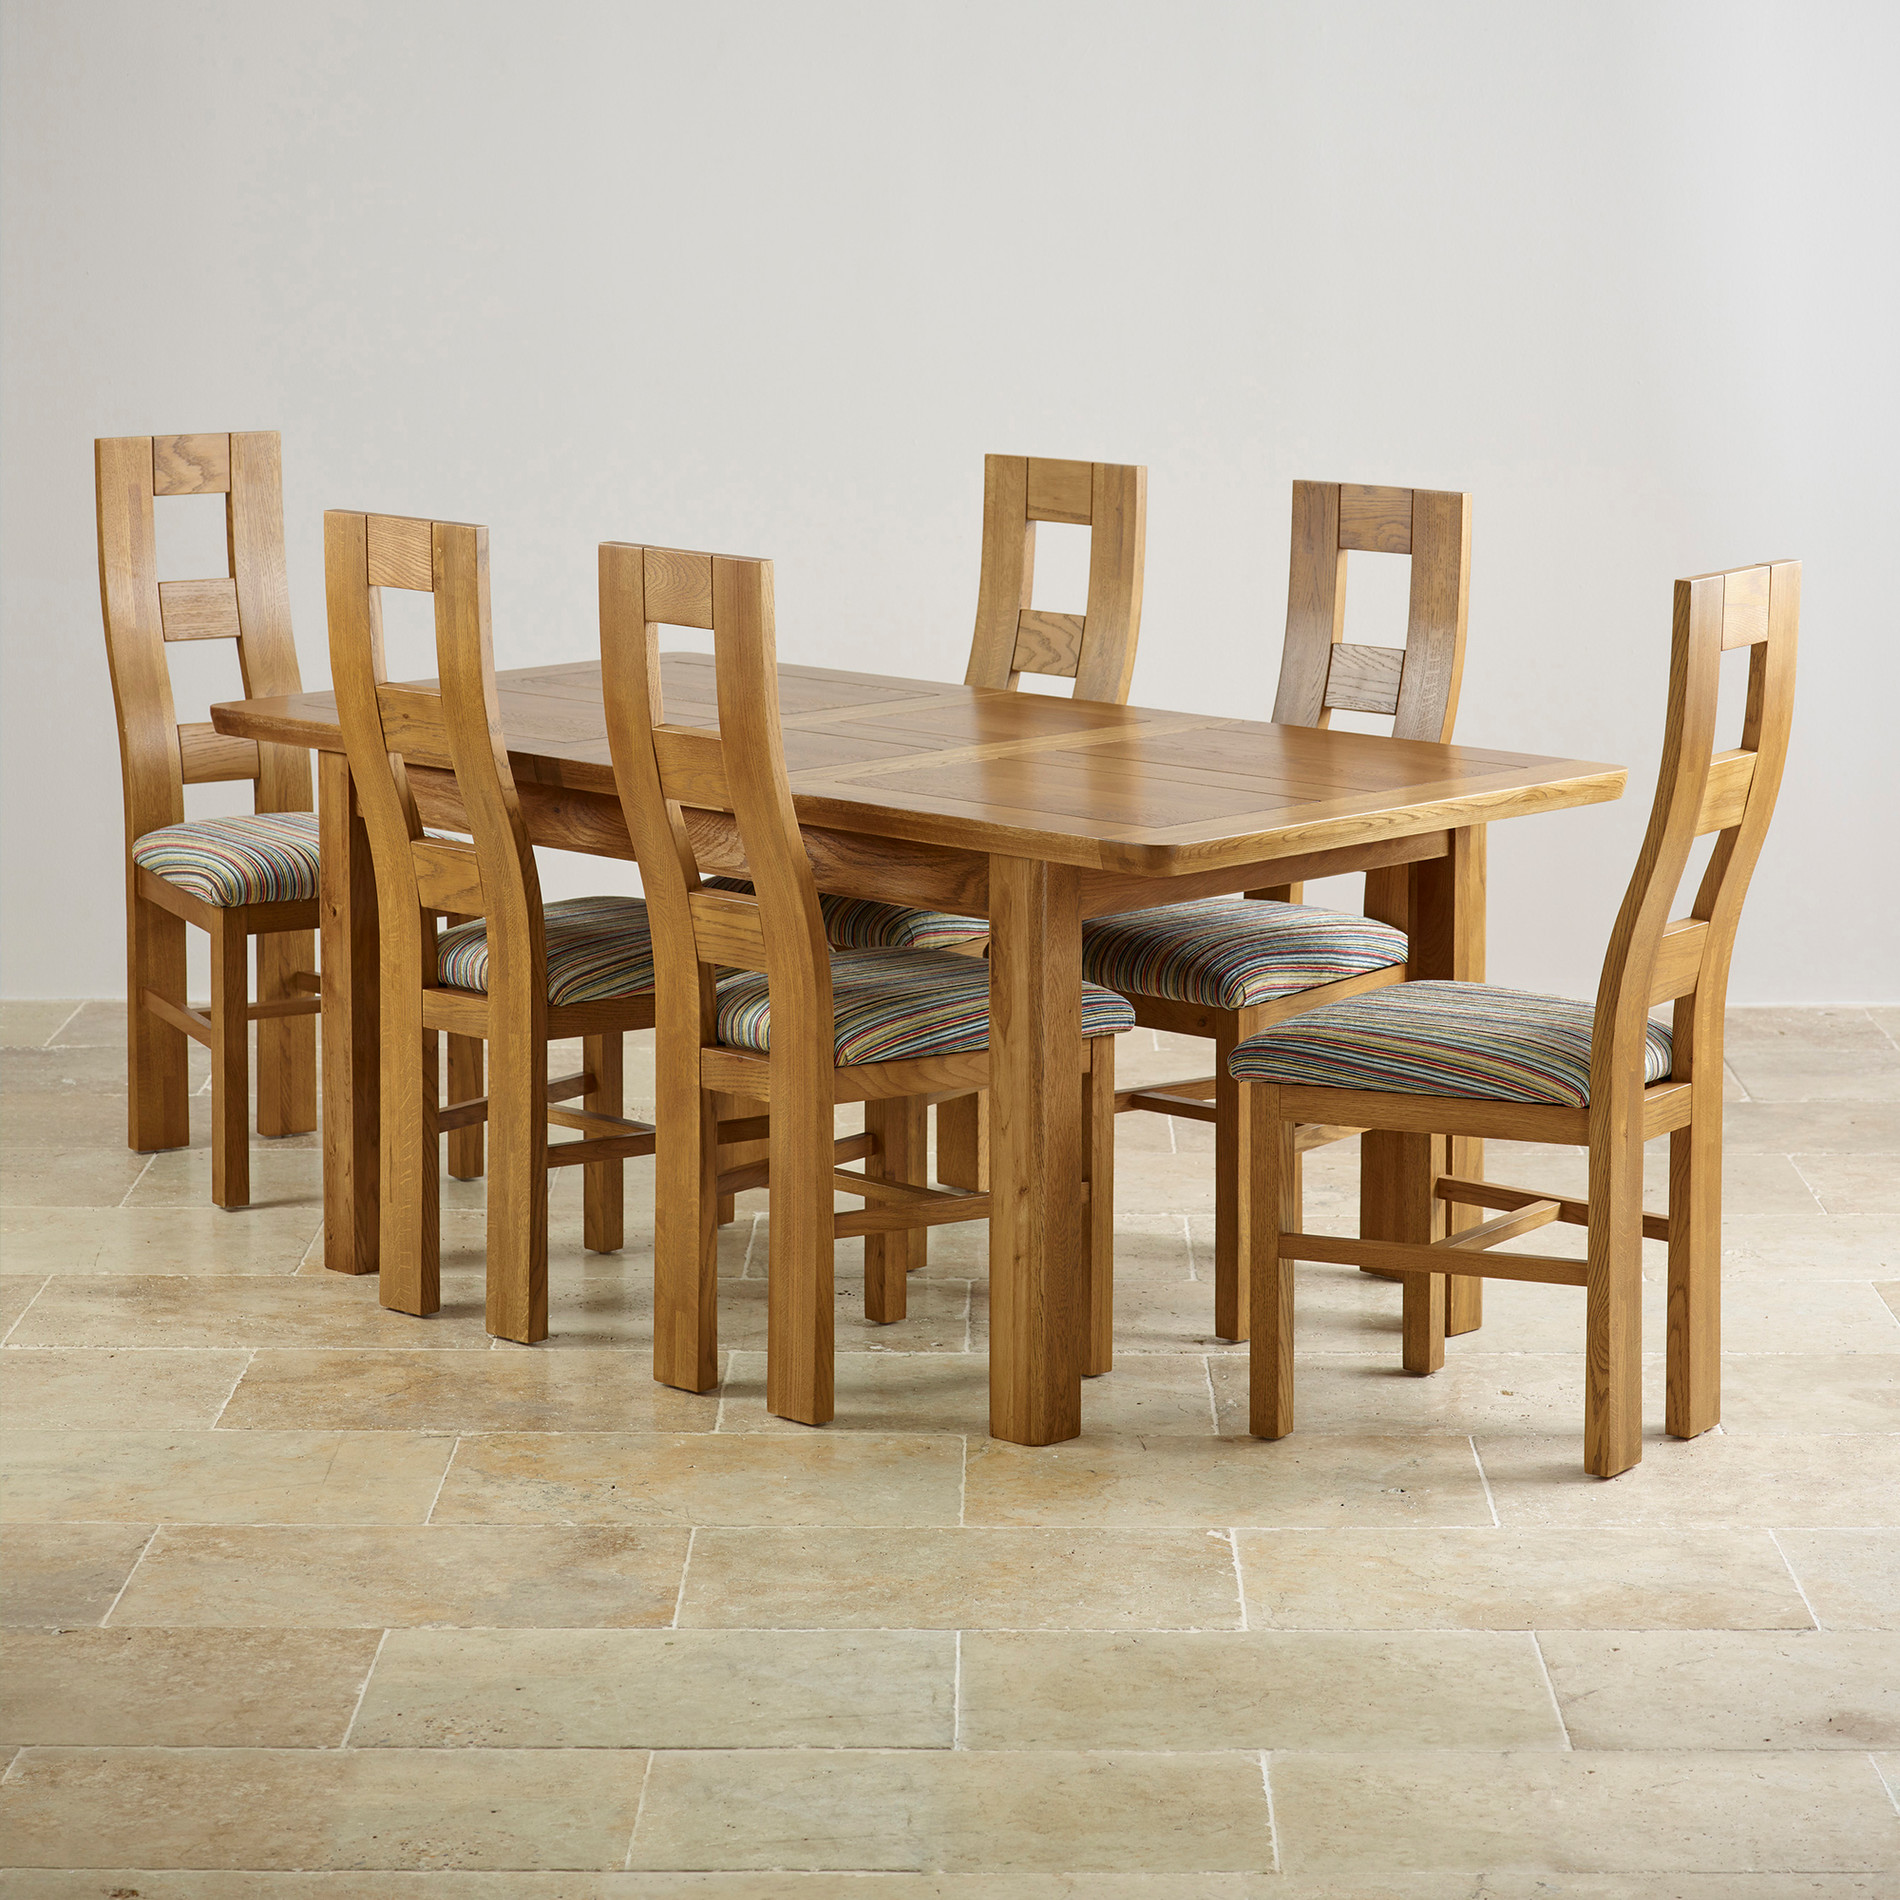 Orrick Extending Dining Set In Rustic Oak: Table + 6 Beige